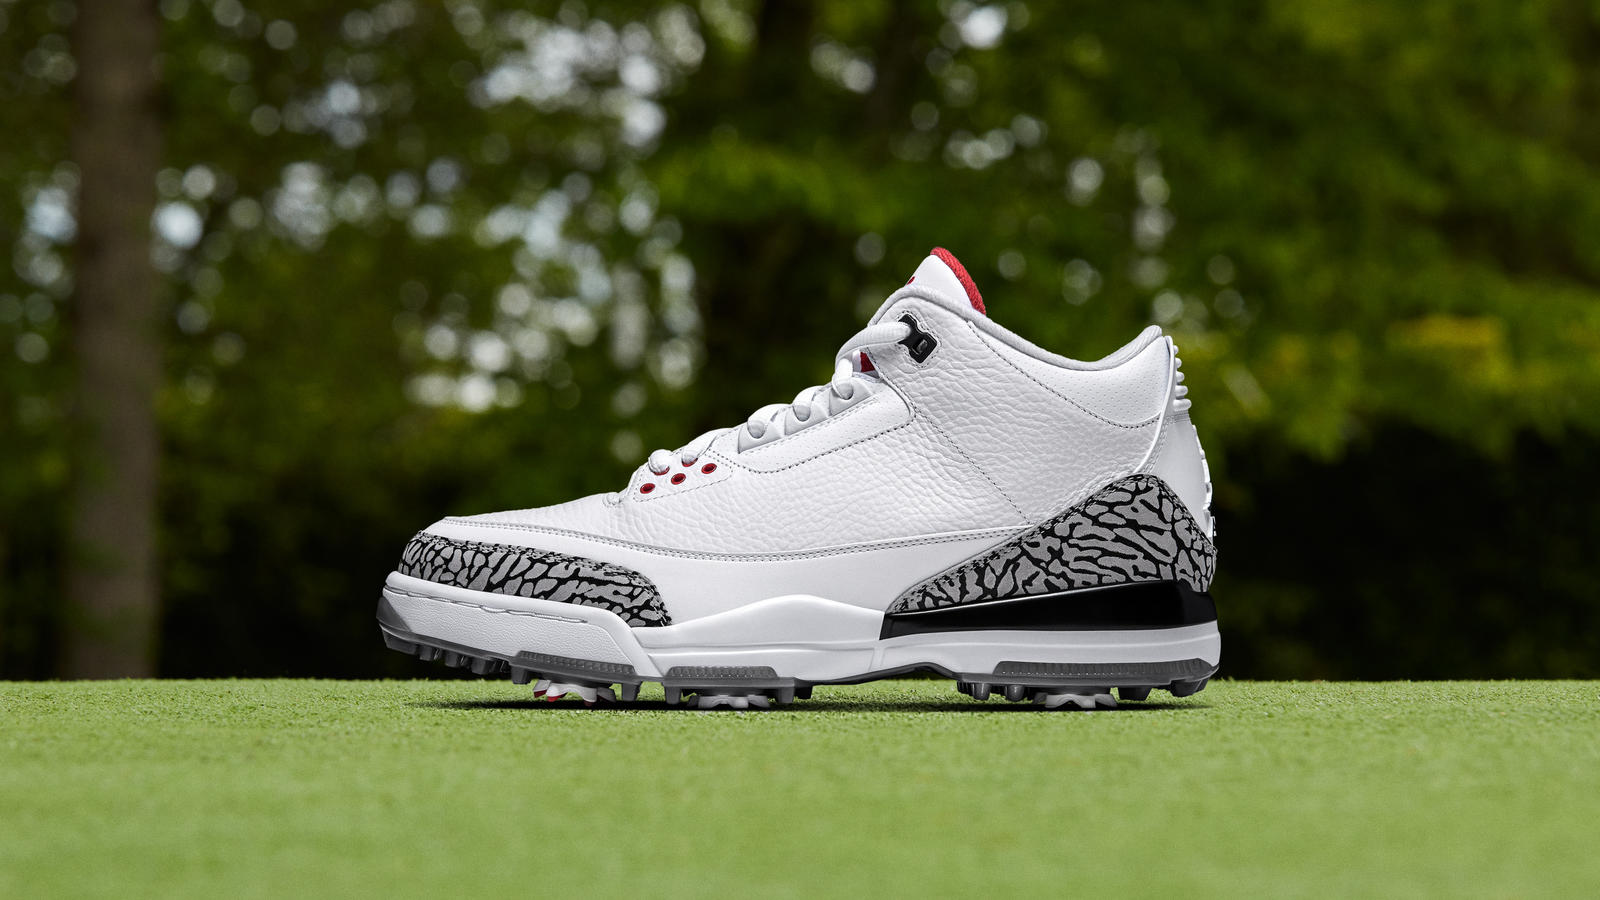 edfff0d1d6ec Air Jordan III Golf - Nike News